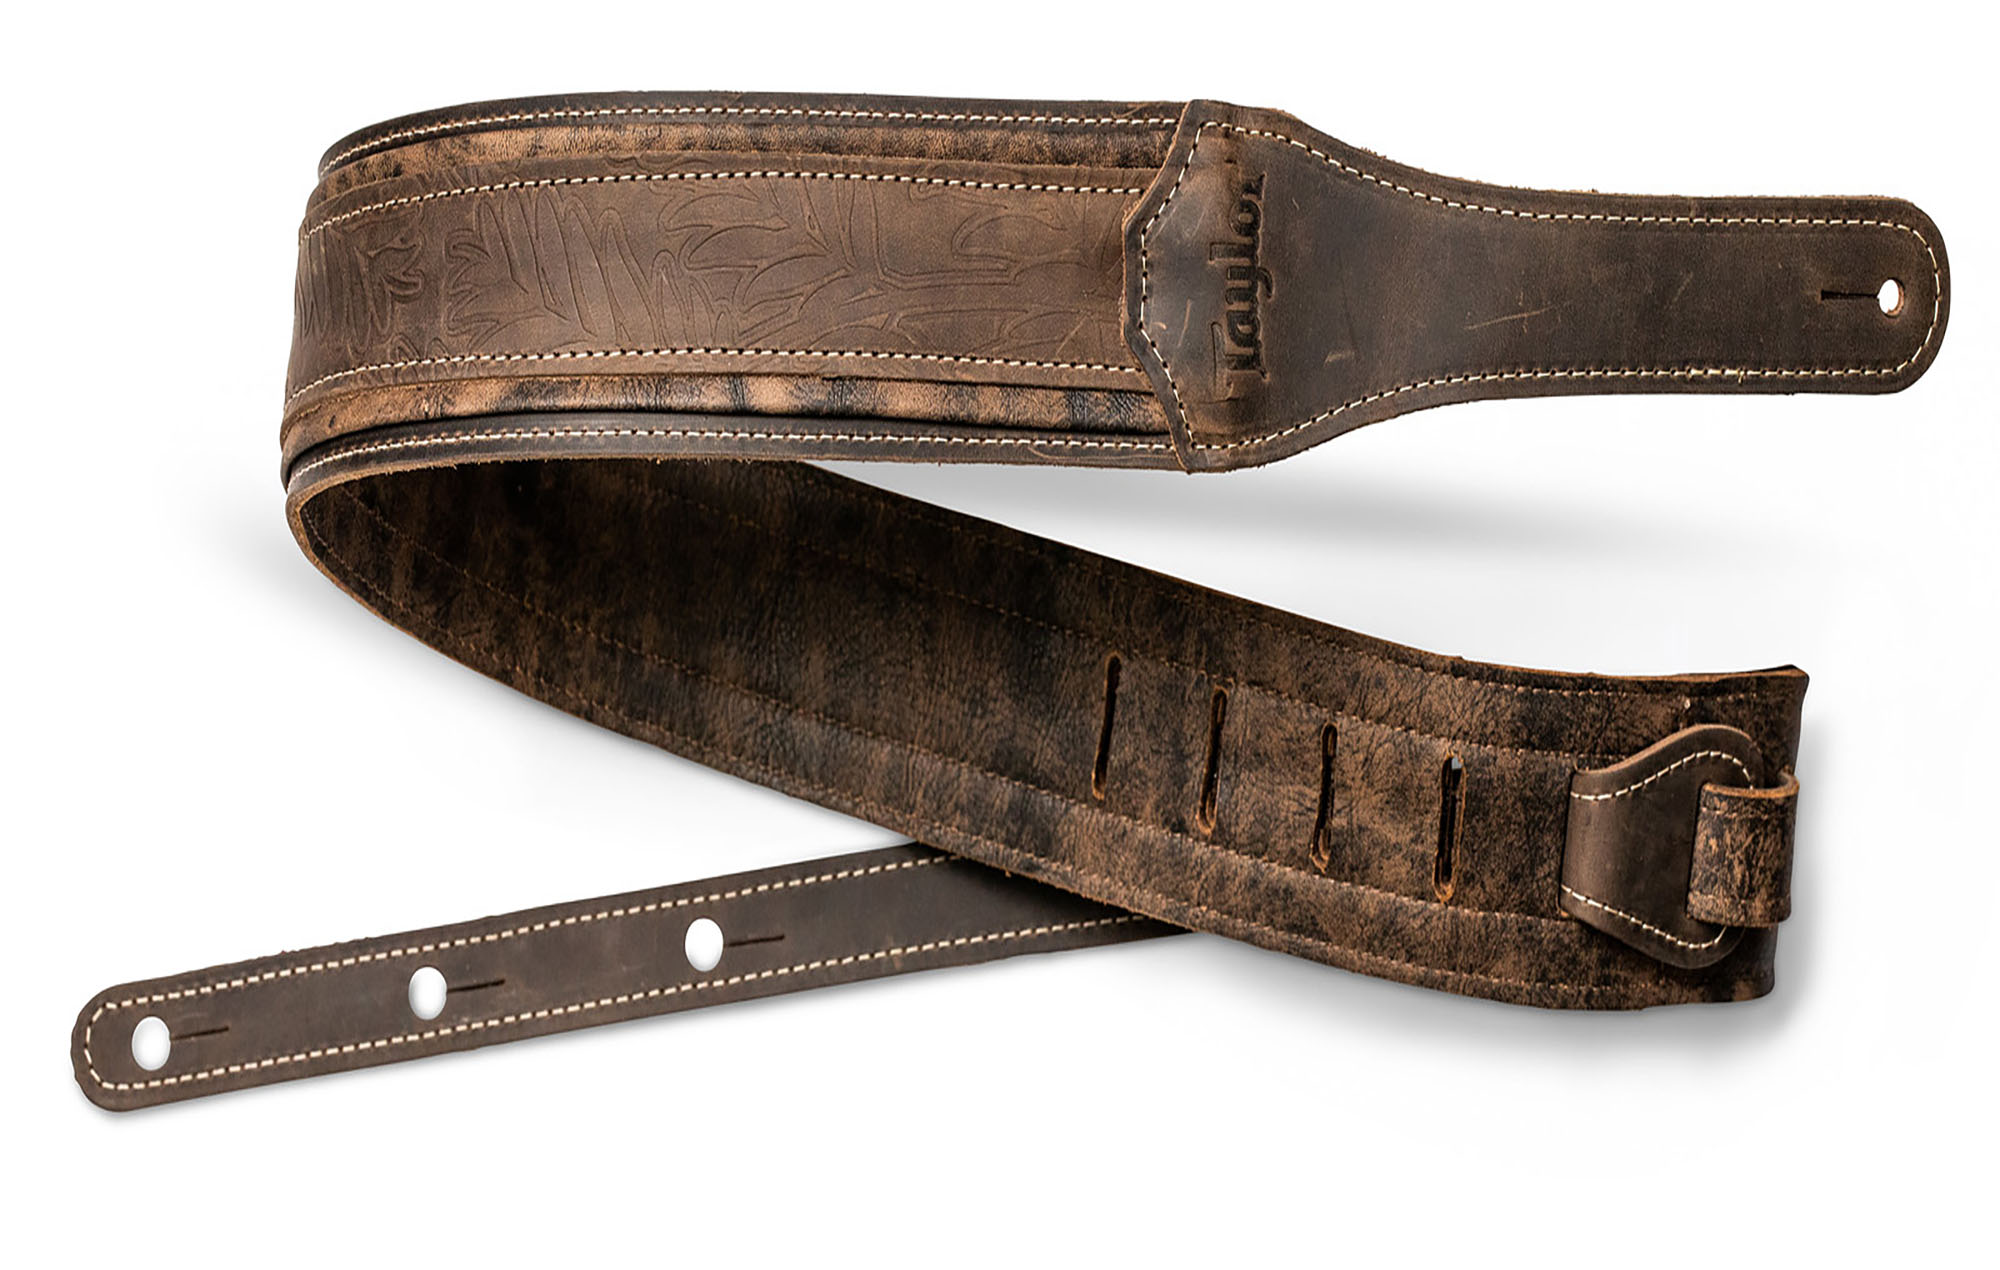 The Last Of Us guitar strap. Image credit: Naughty Dog